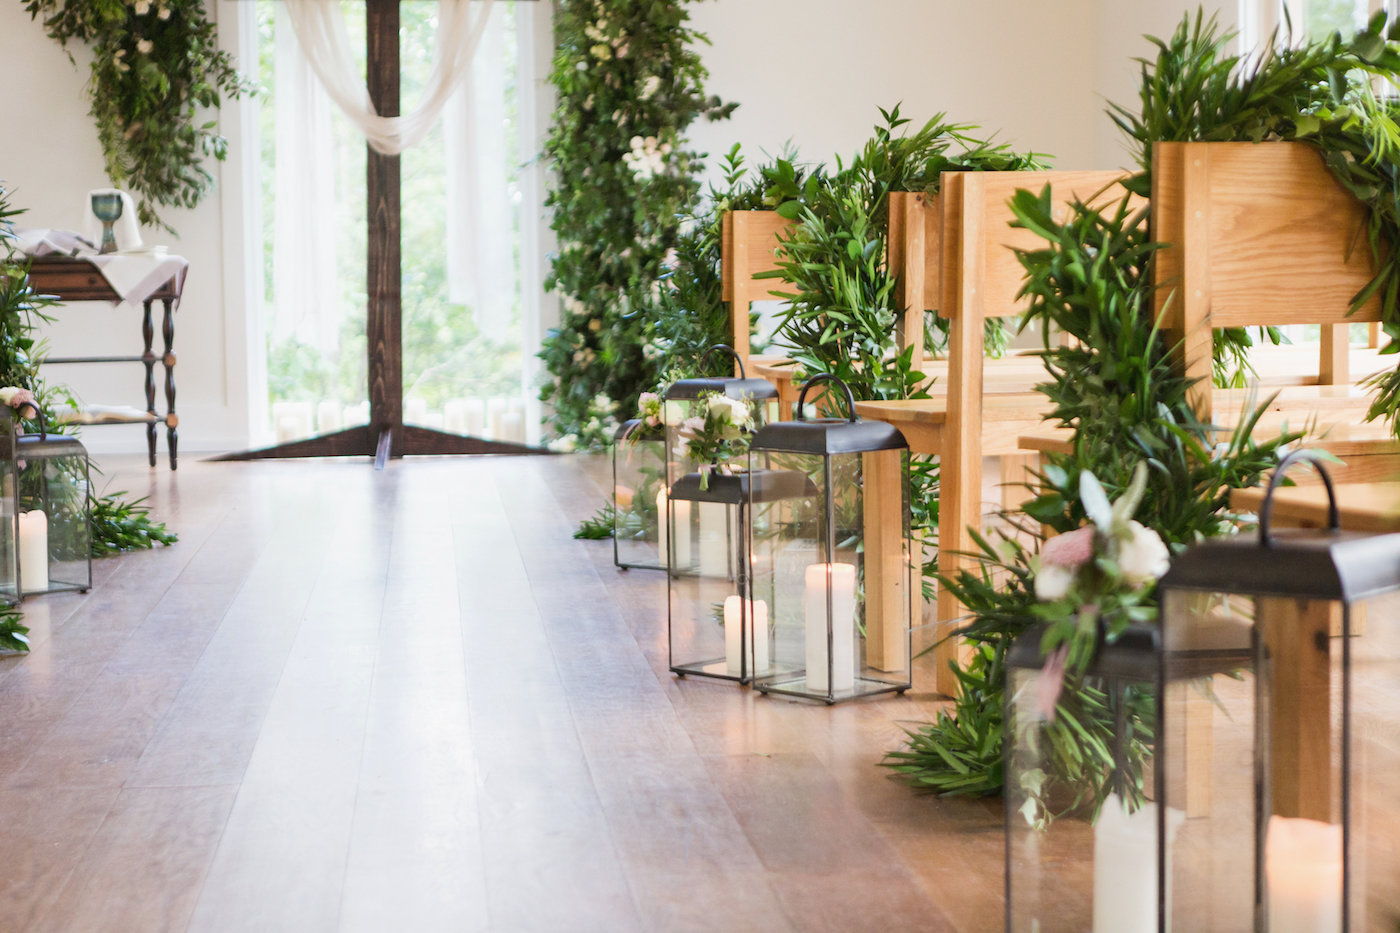 Wedding Aisle with Lanterns and Greenery